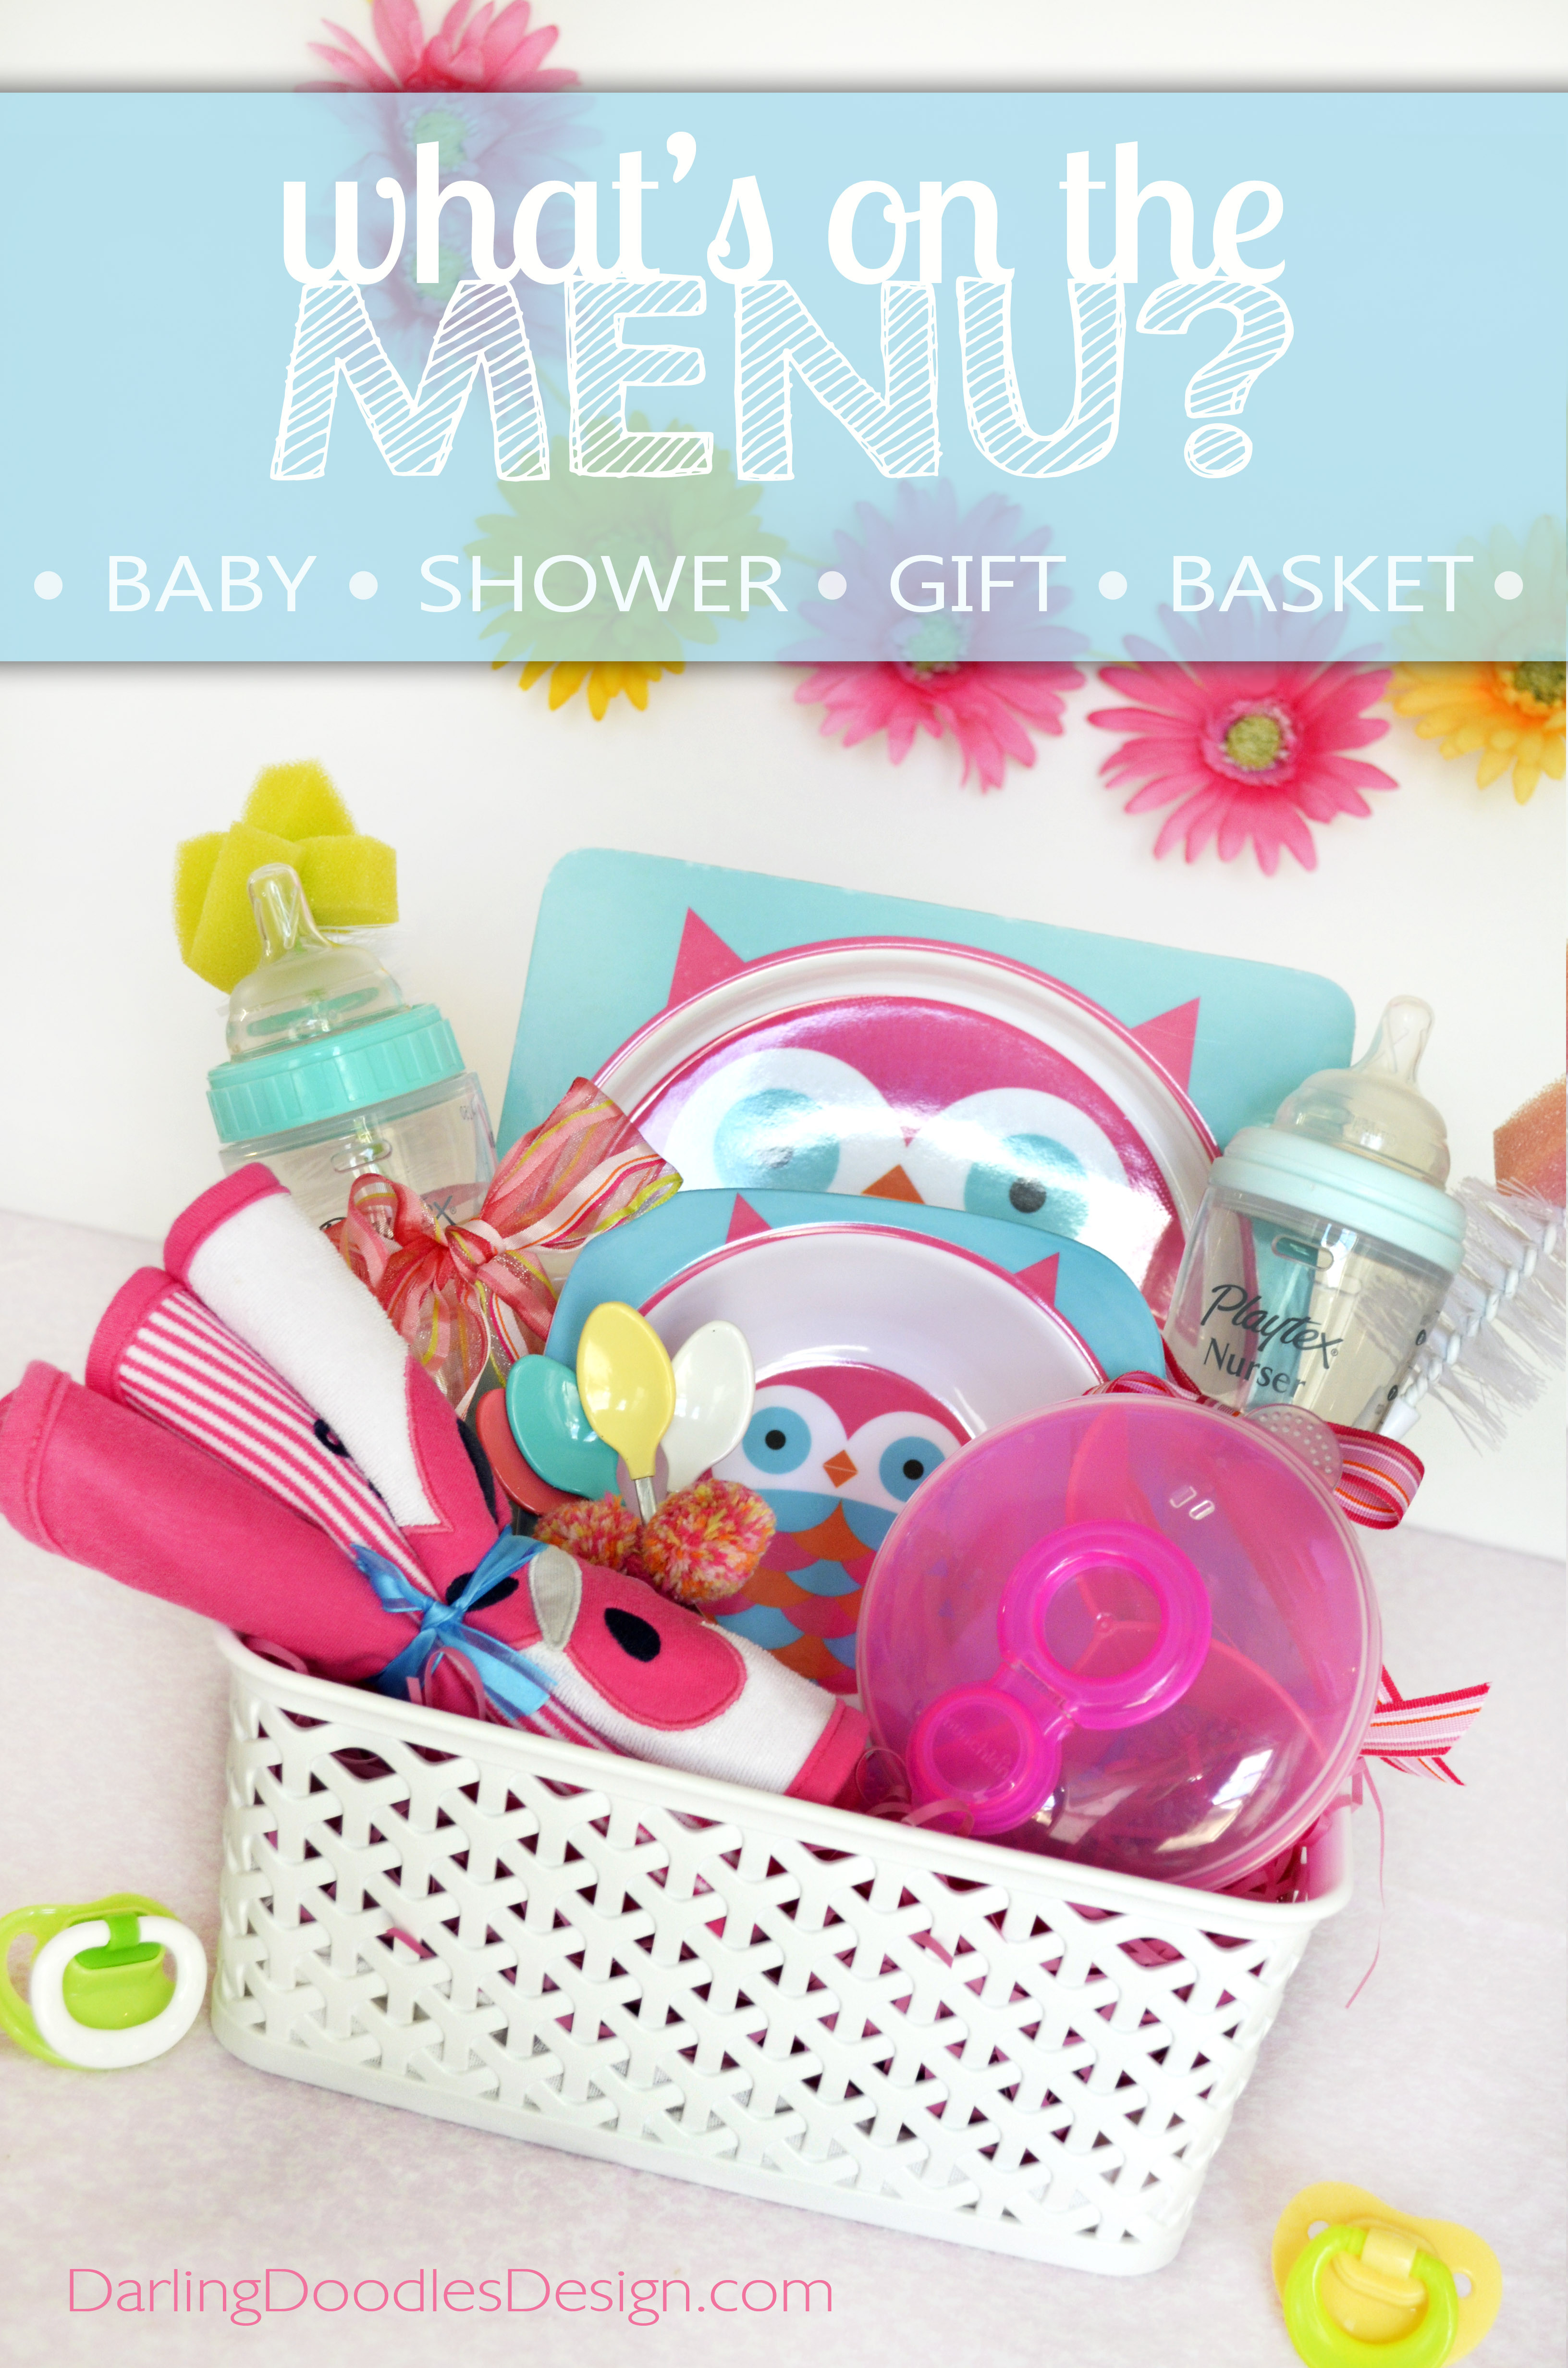 Best ideas about DIY Baby Shower Gift Basket Ideas . Save or Pin Baby Shower Now.